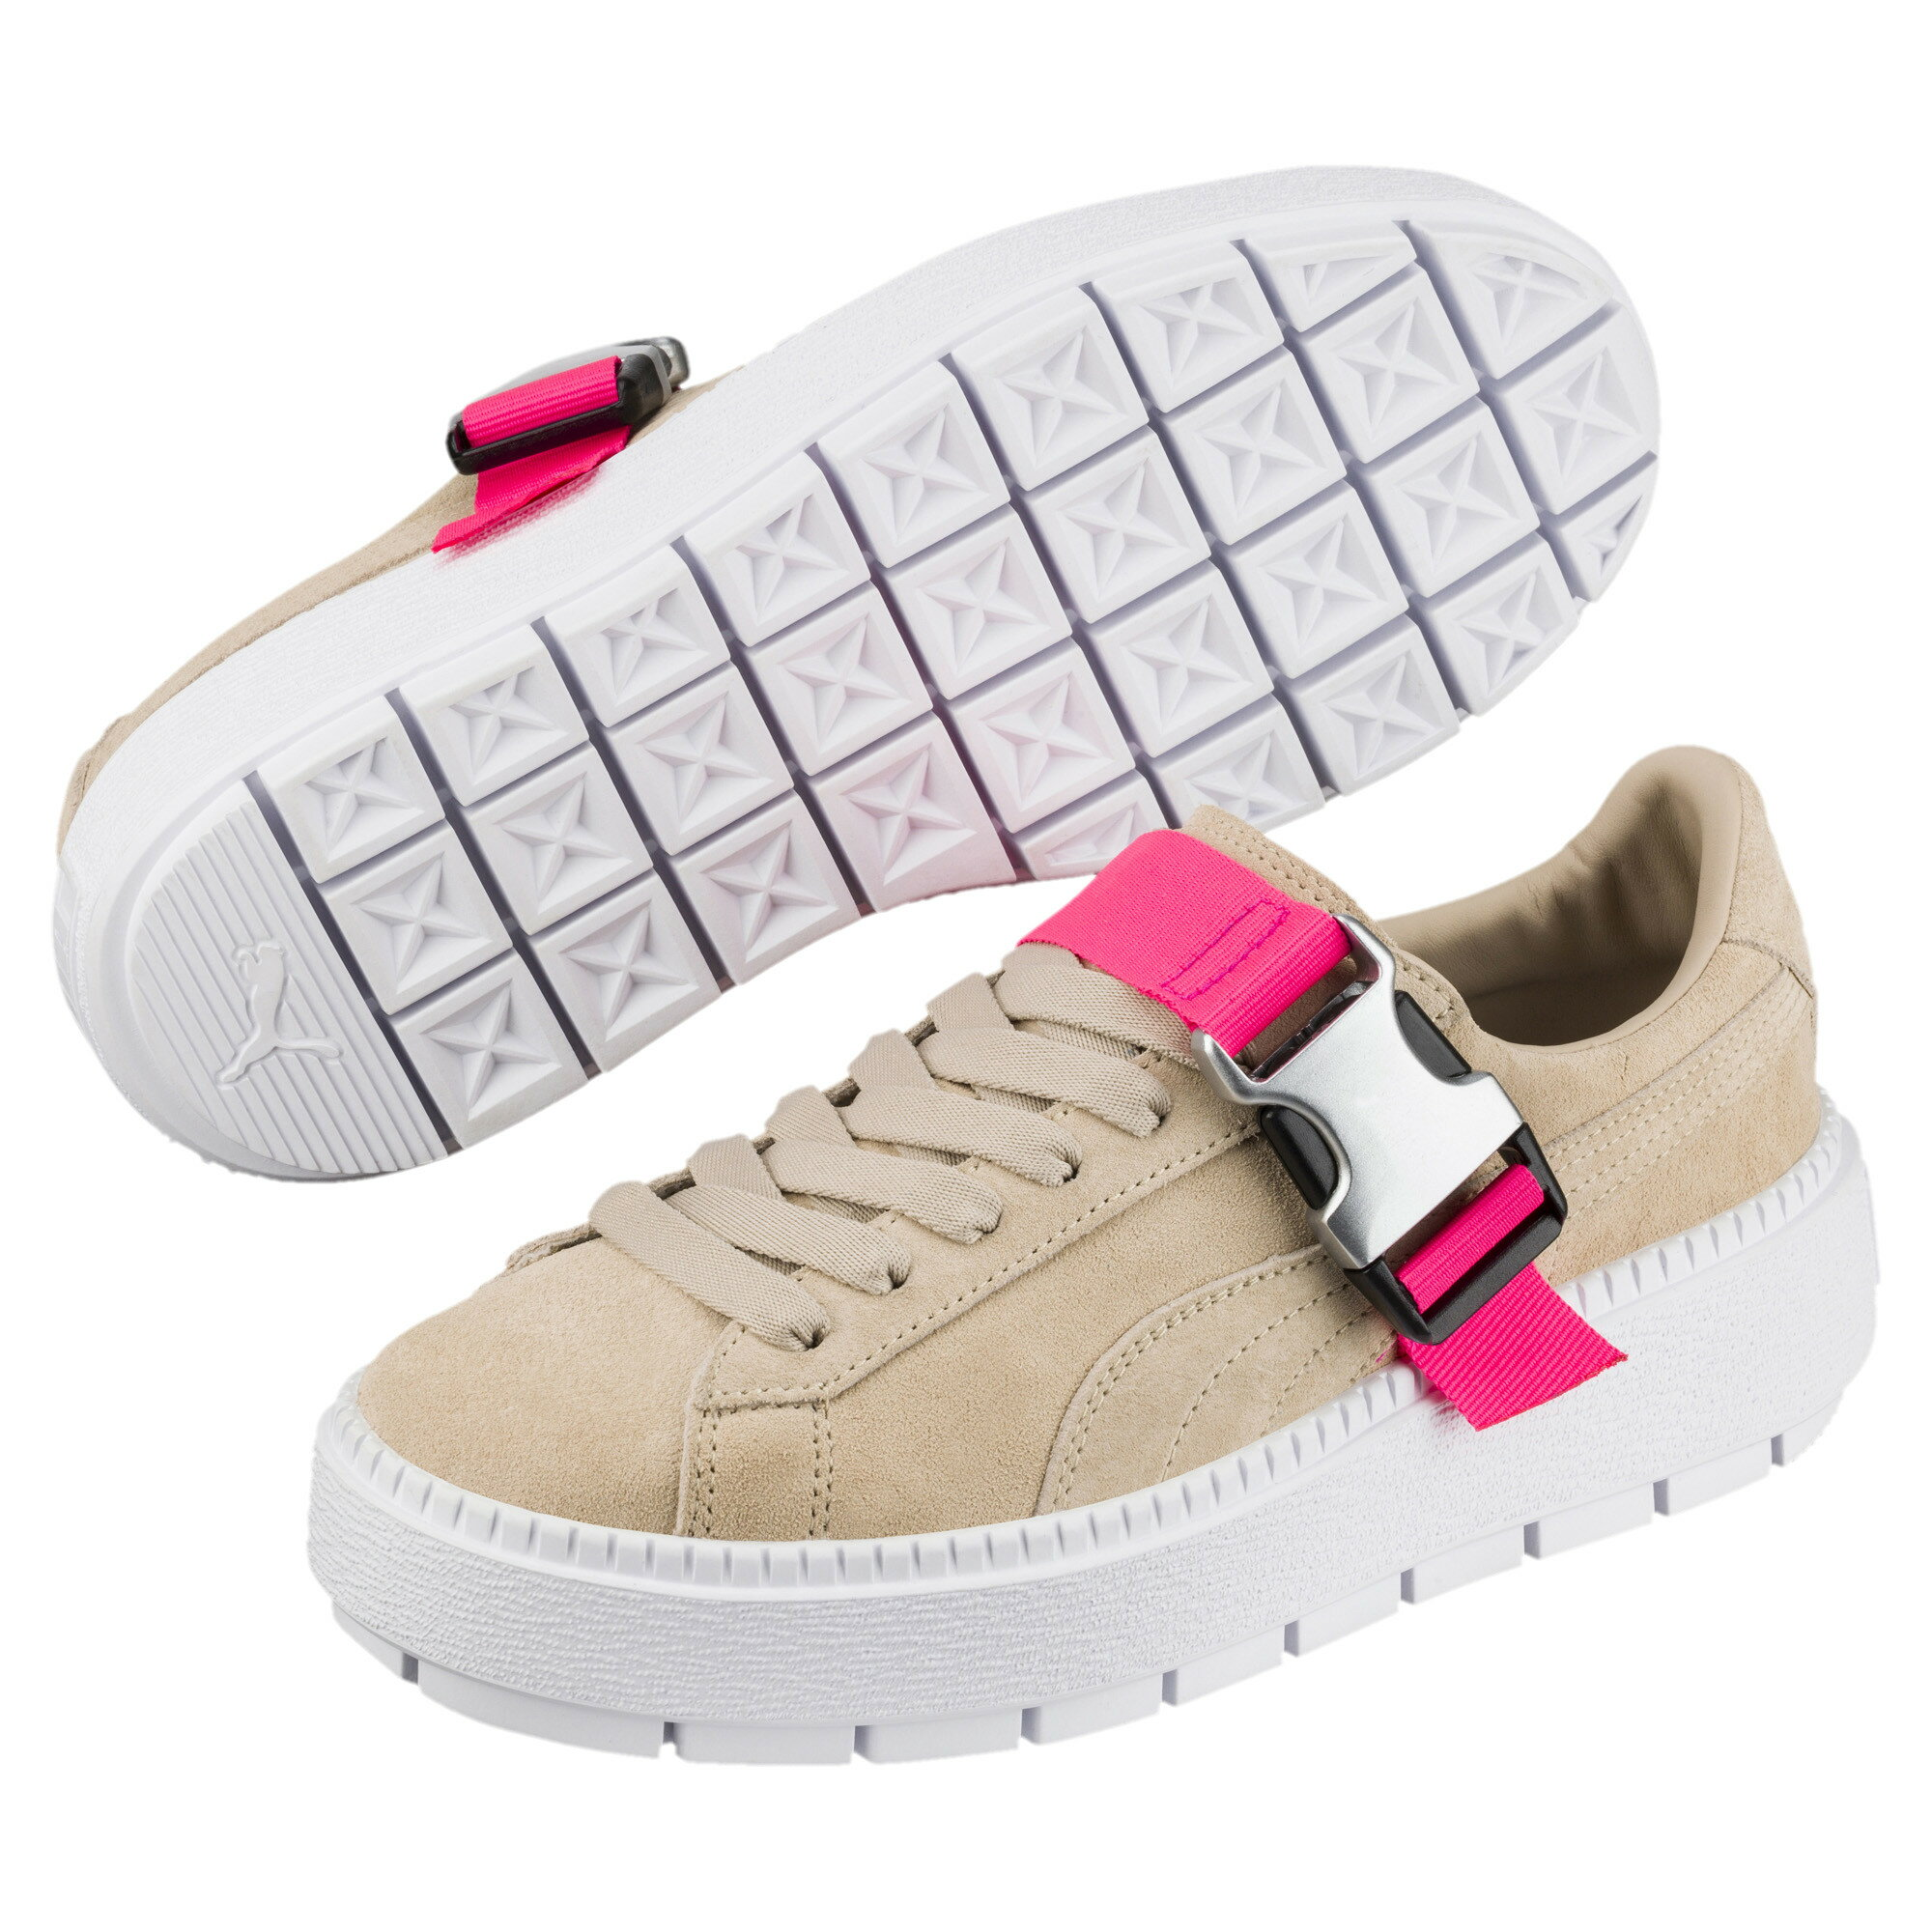 51c68ef18738 Official Puma Store  PUMA Platform Trace Buckle Women s Sneakers ...